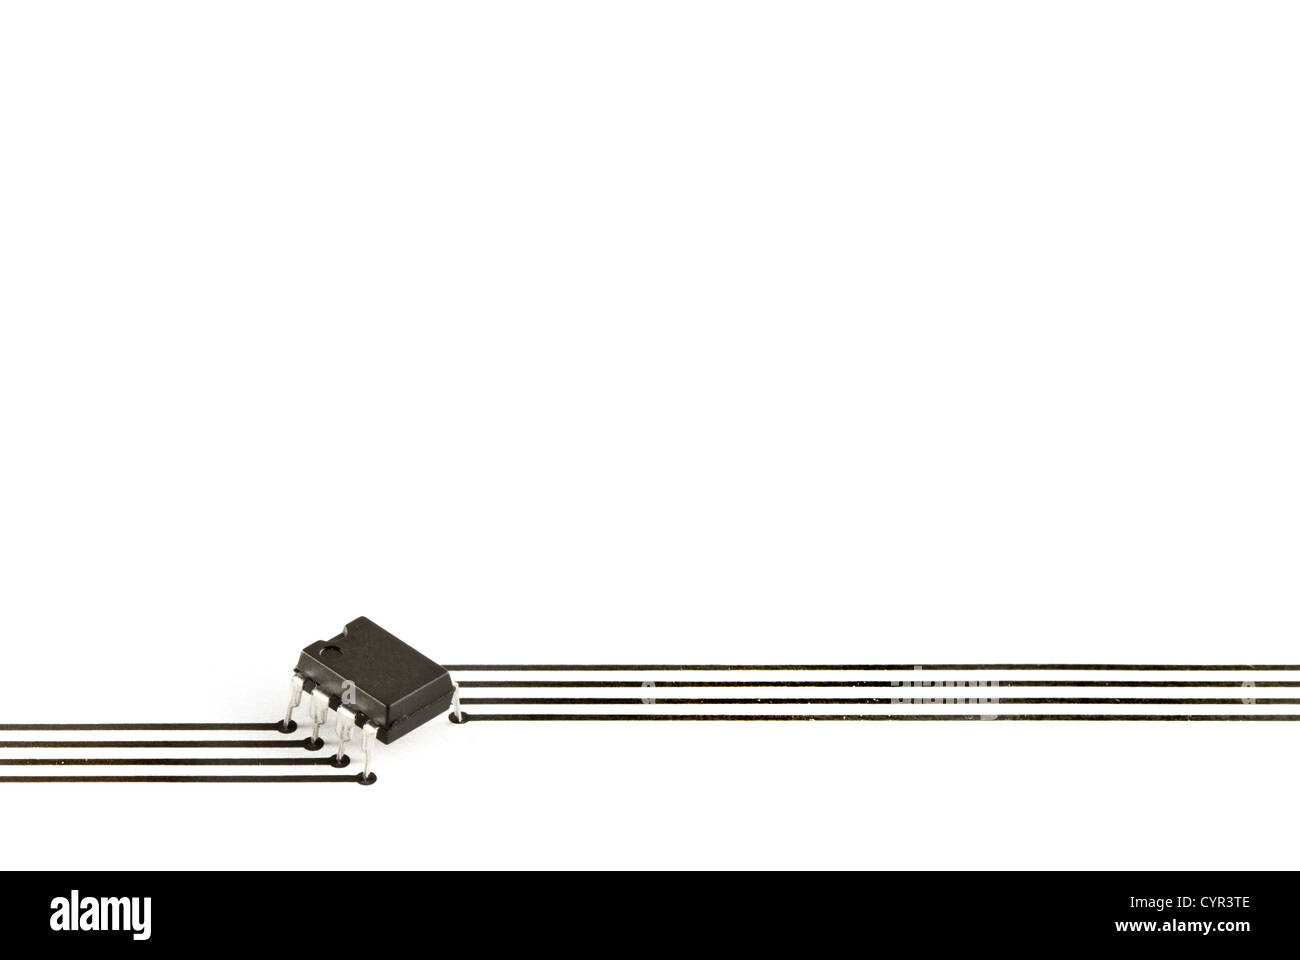 Design elements formed of an electronic chip and tracks printed on paper - Stock Image